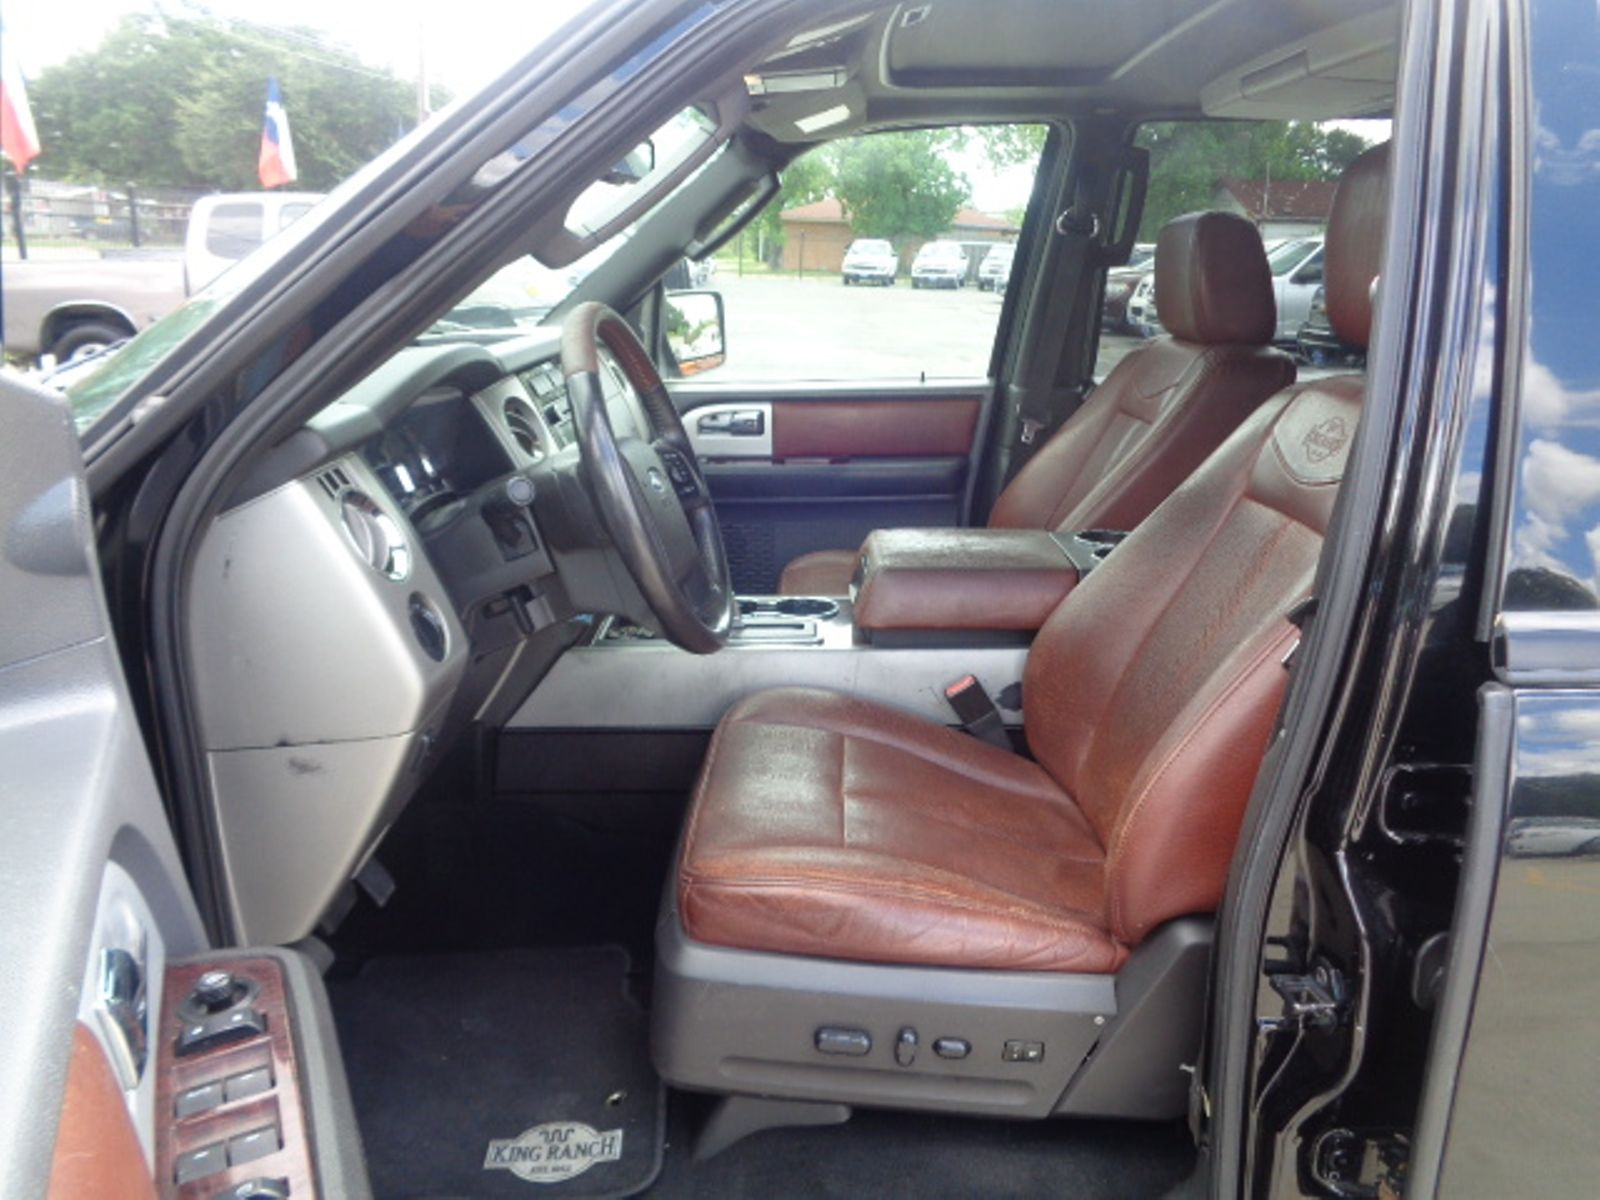 2008 expedition king ranch